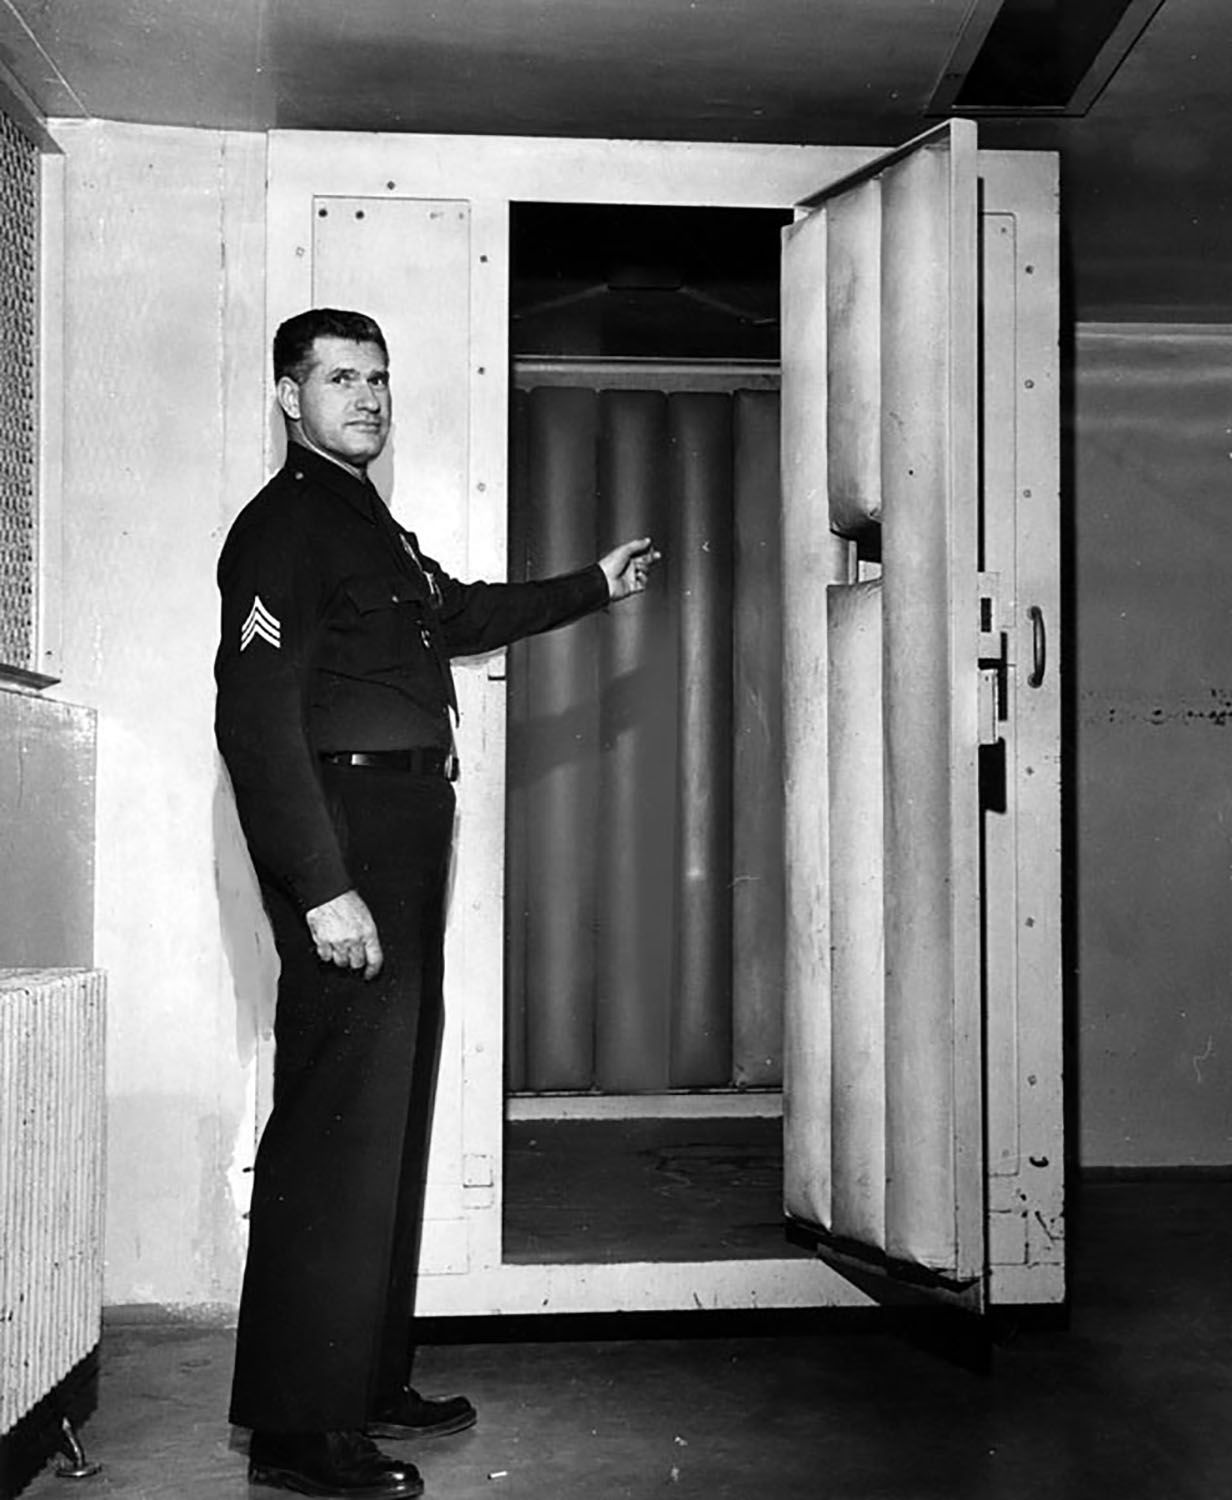 LAPD Sgt. William Menton shows off a padded cell at the